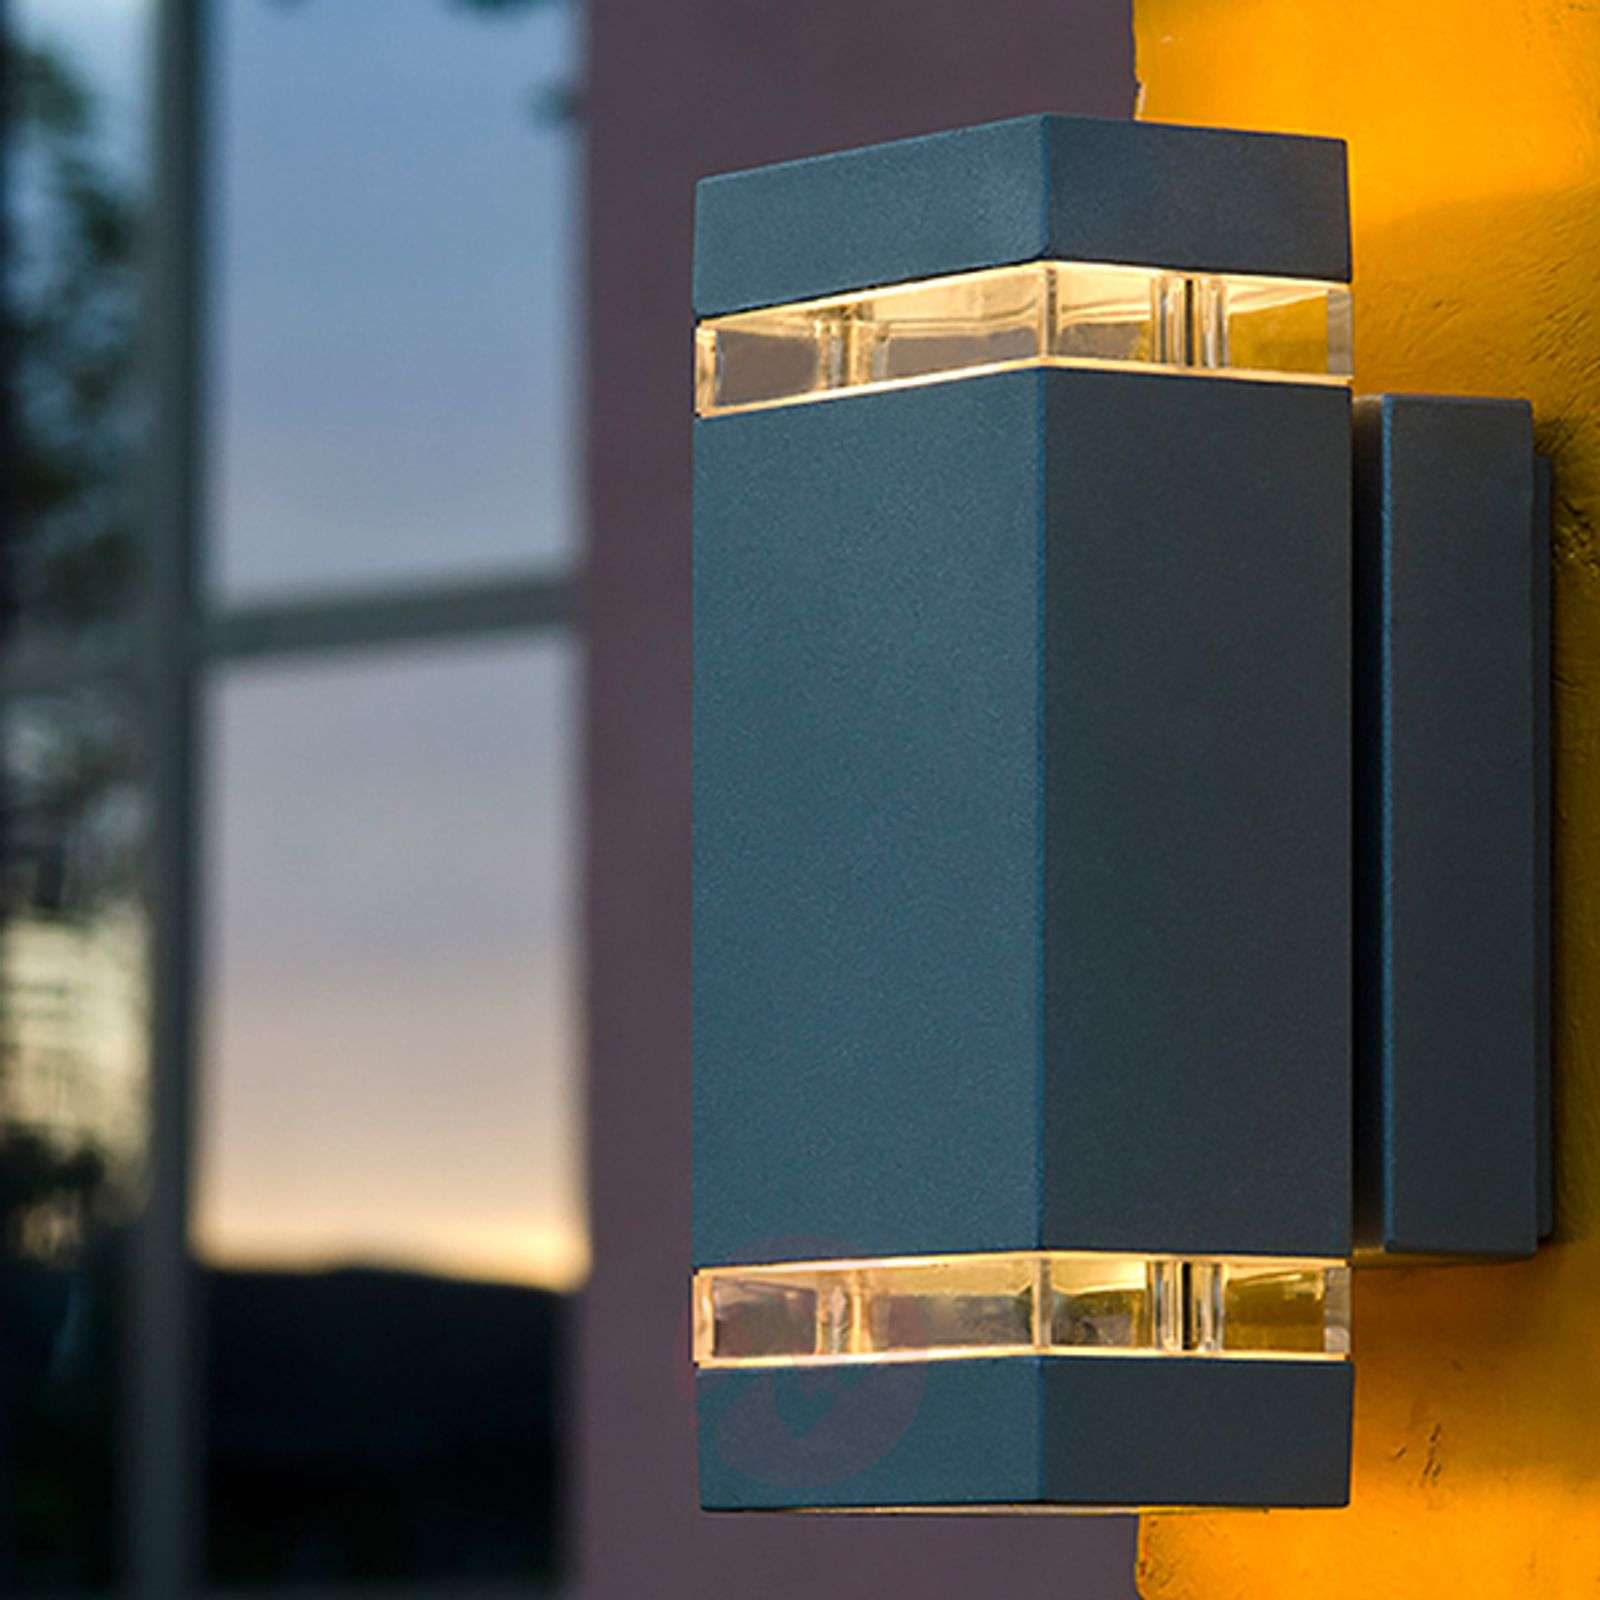 Rectangular-shaped FOCUS LED exterior wall light-3006128-02